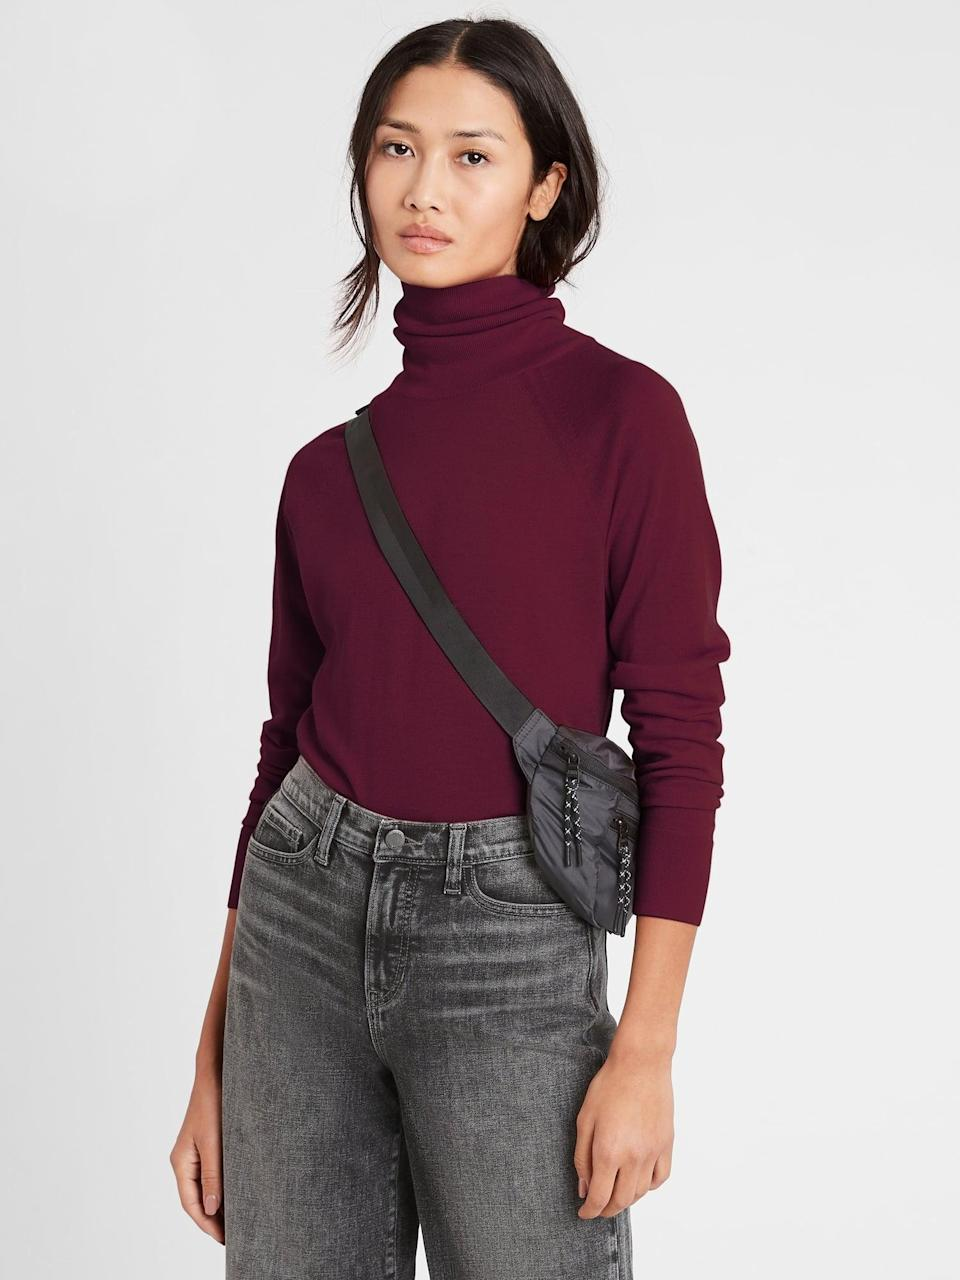 <p>Find an even steeper discount on the <span>Banana Republic Merino Turtleneck Sweater in Responsible Wool in Red Wine</span> ($55, originally $80).</p>